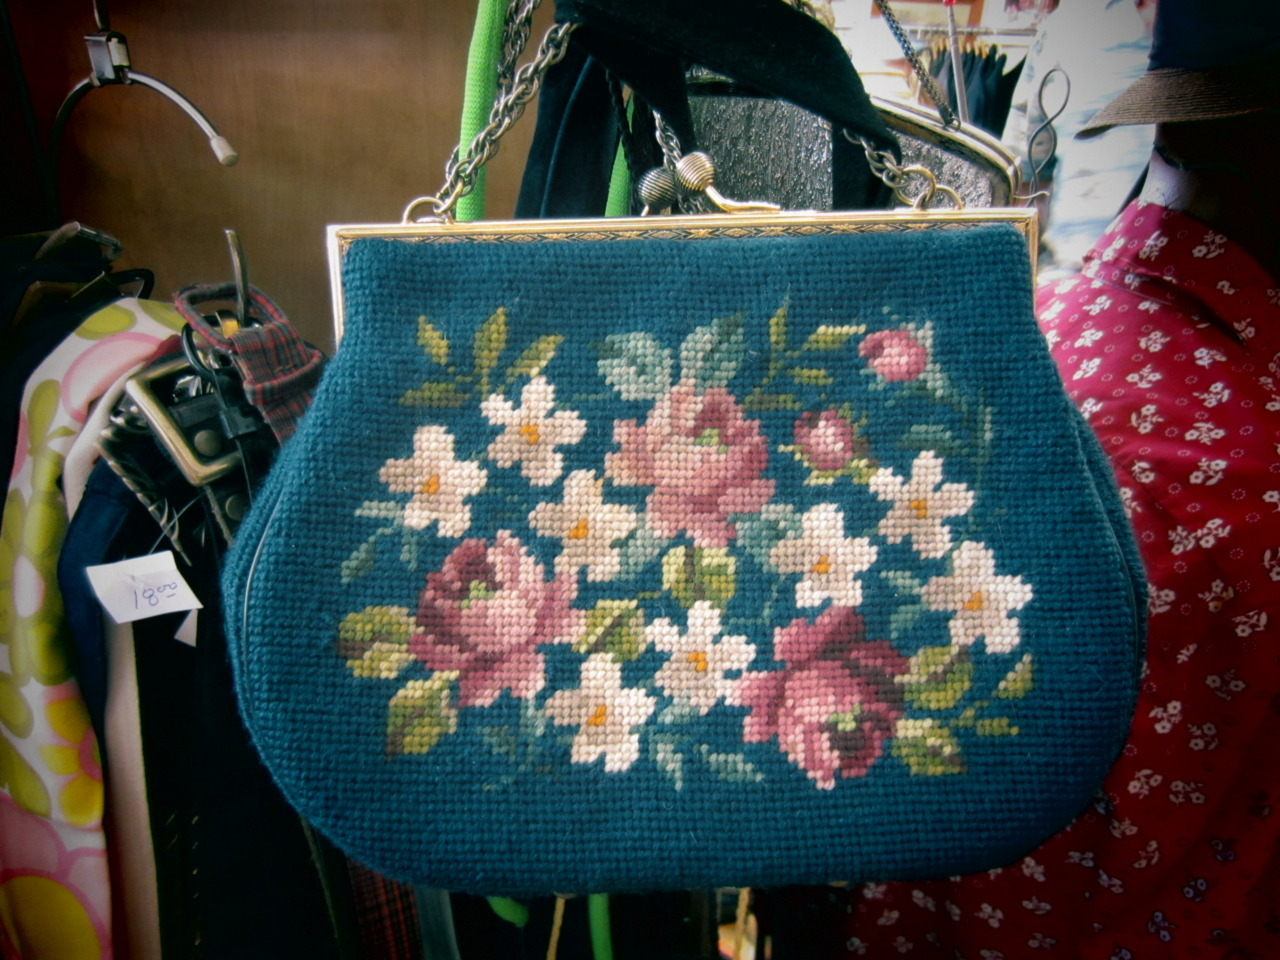 holy mother of vintage floral carpetbags!